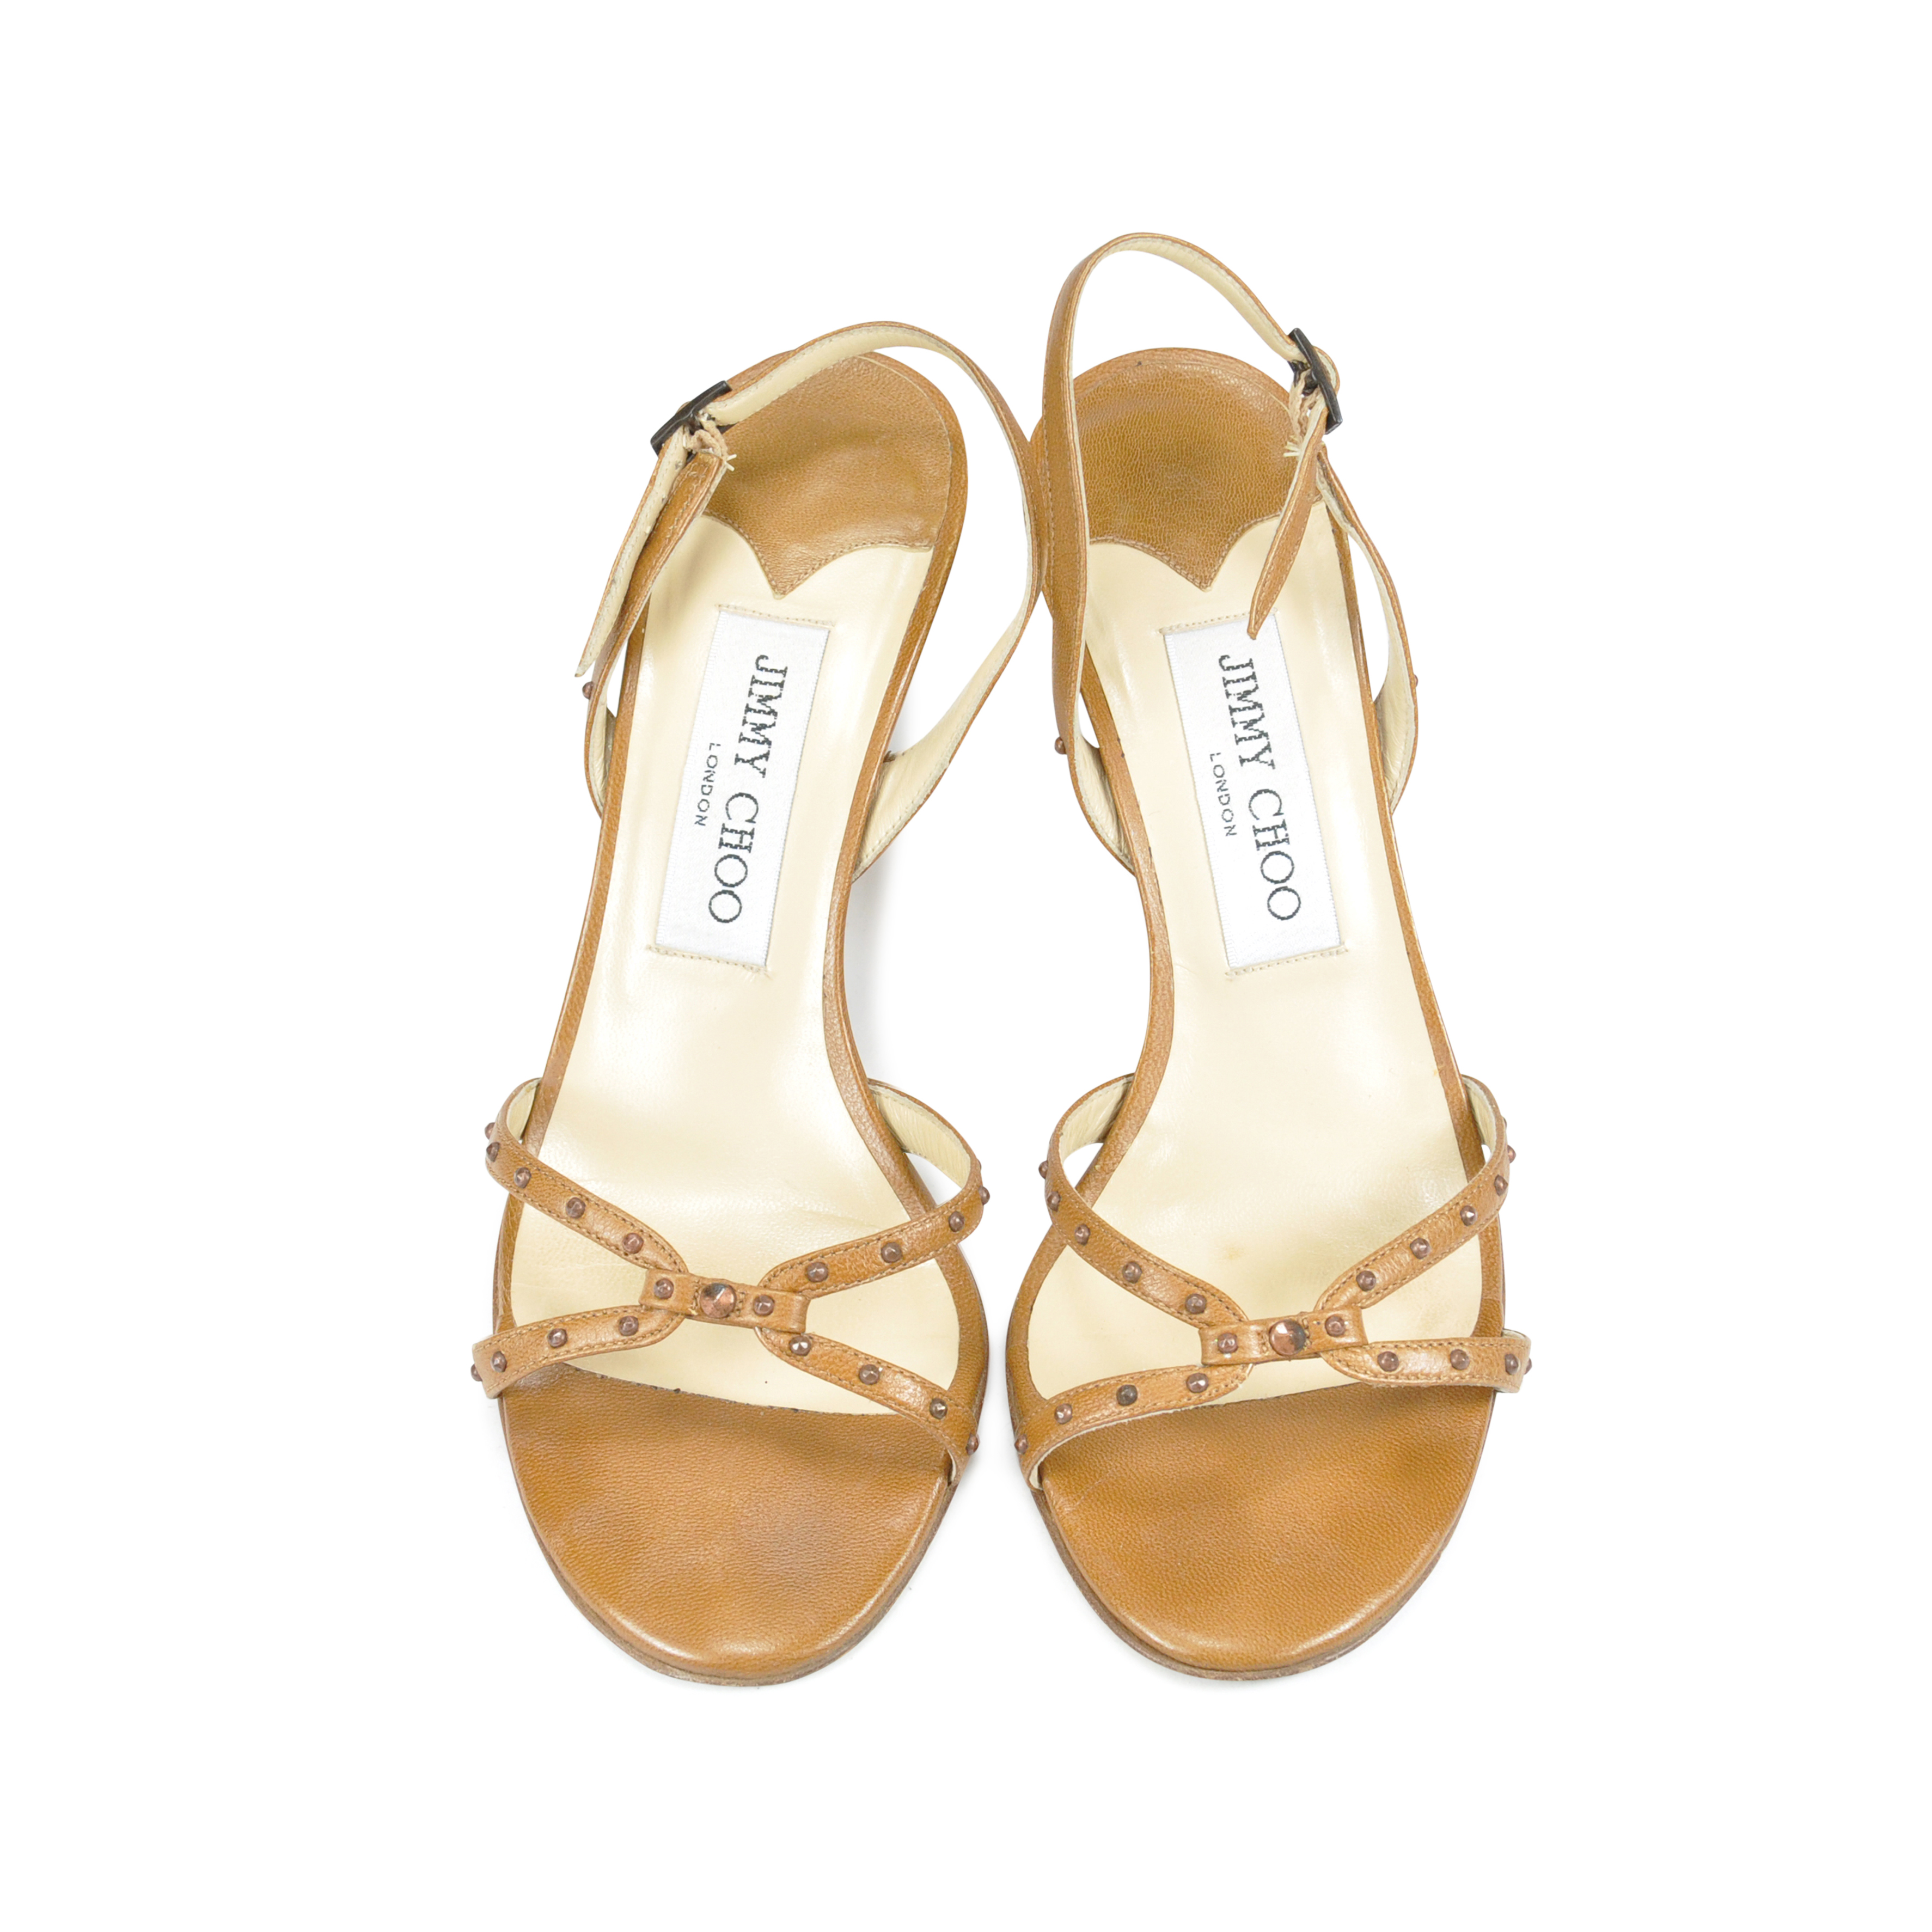 7219acfc31f Authentic Second Hand Jimmy Choo Strappy Studded Sandals (PSS-047-00048)